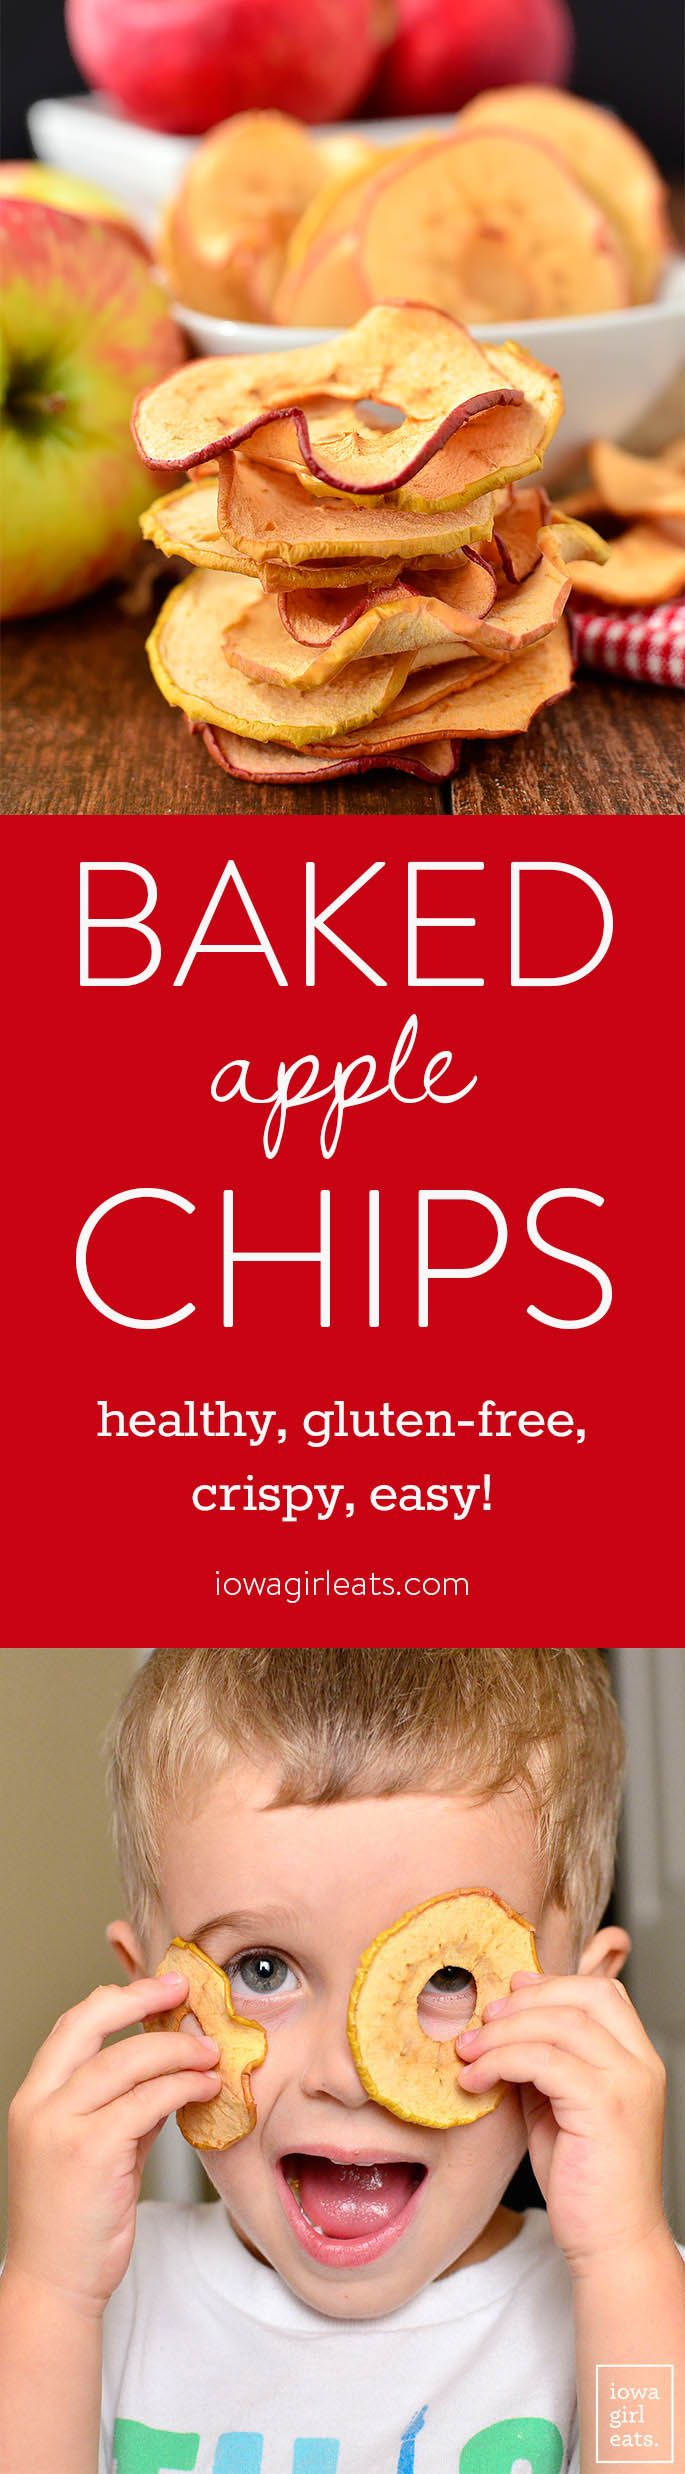 Baked Apple Chips are a healthy snack recipe that will satisfy your craving for something sweet and crunchy. Just slice, bake, and eat! | iowagirleats.com